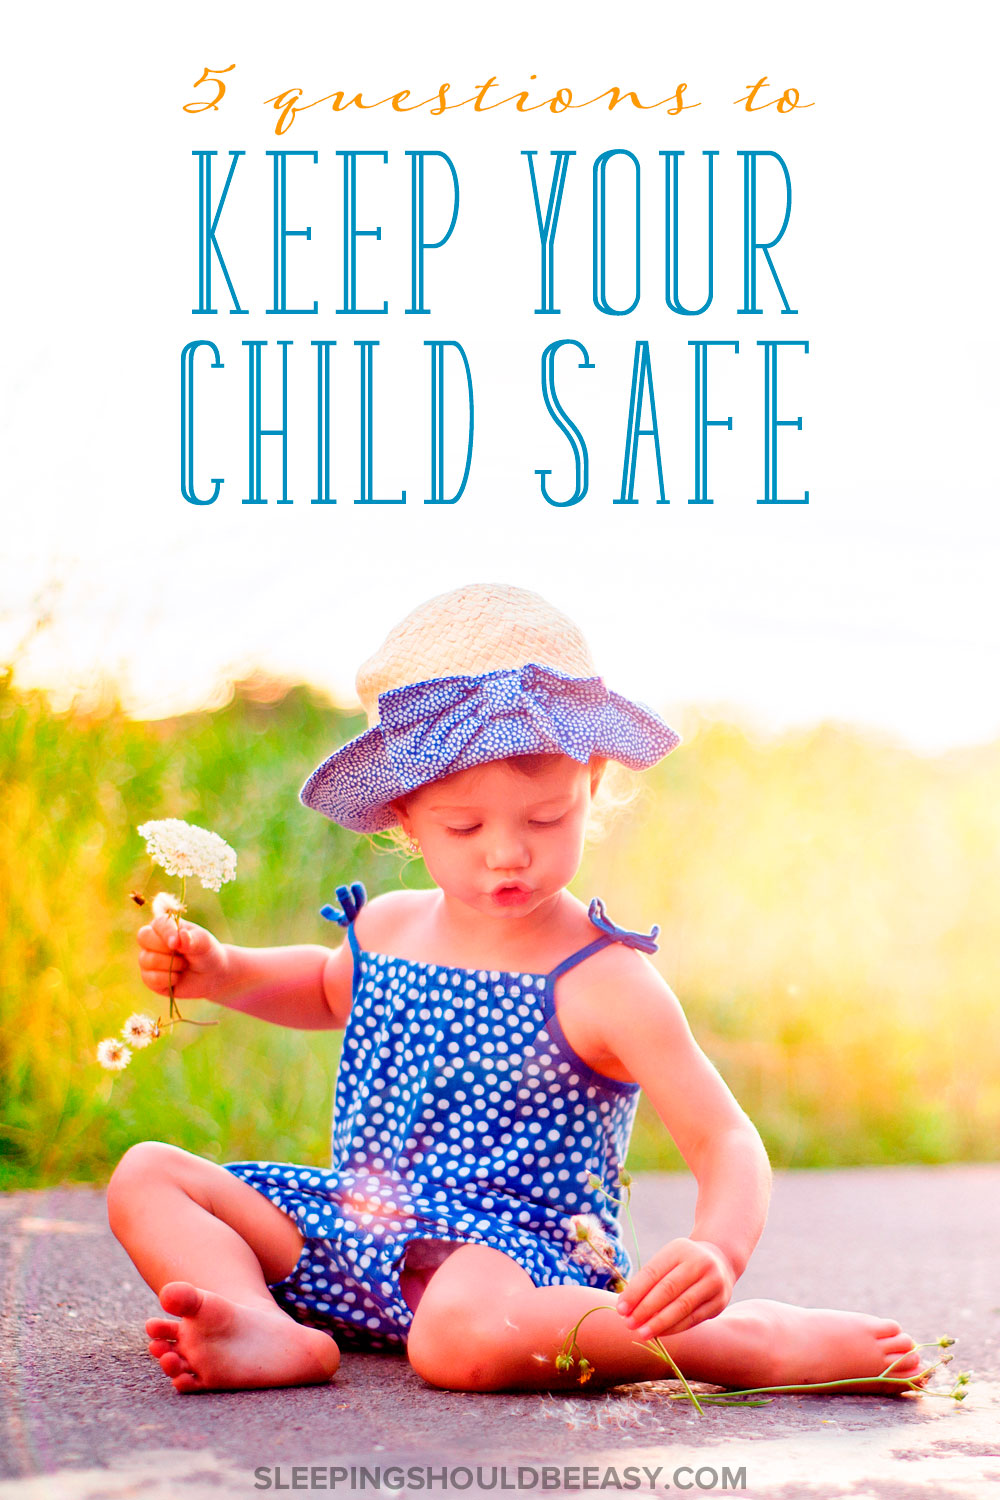 I was surprised when I gave my child a hypothetical question about his safety. Here are 5 questions to keep your child safe and review what she should do.